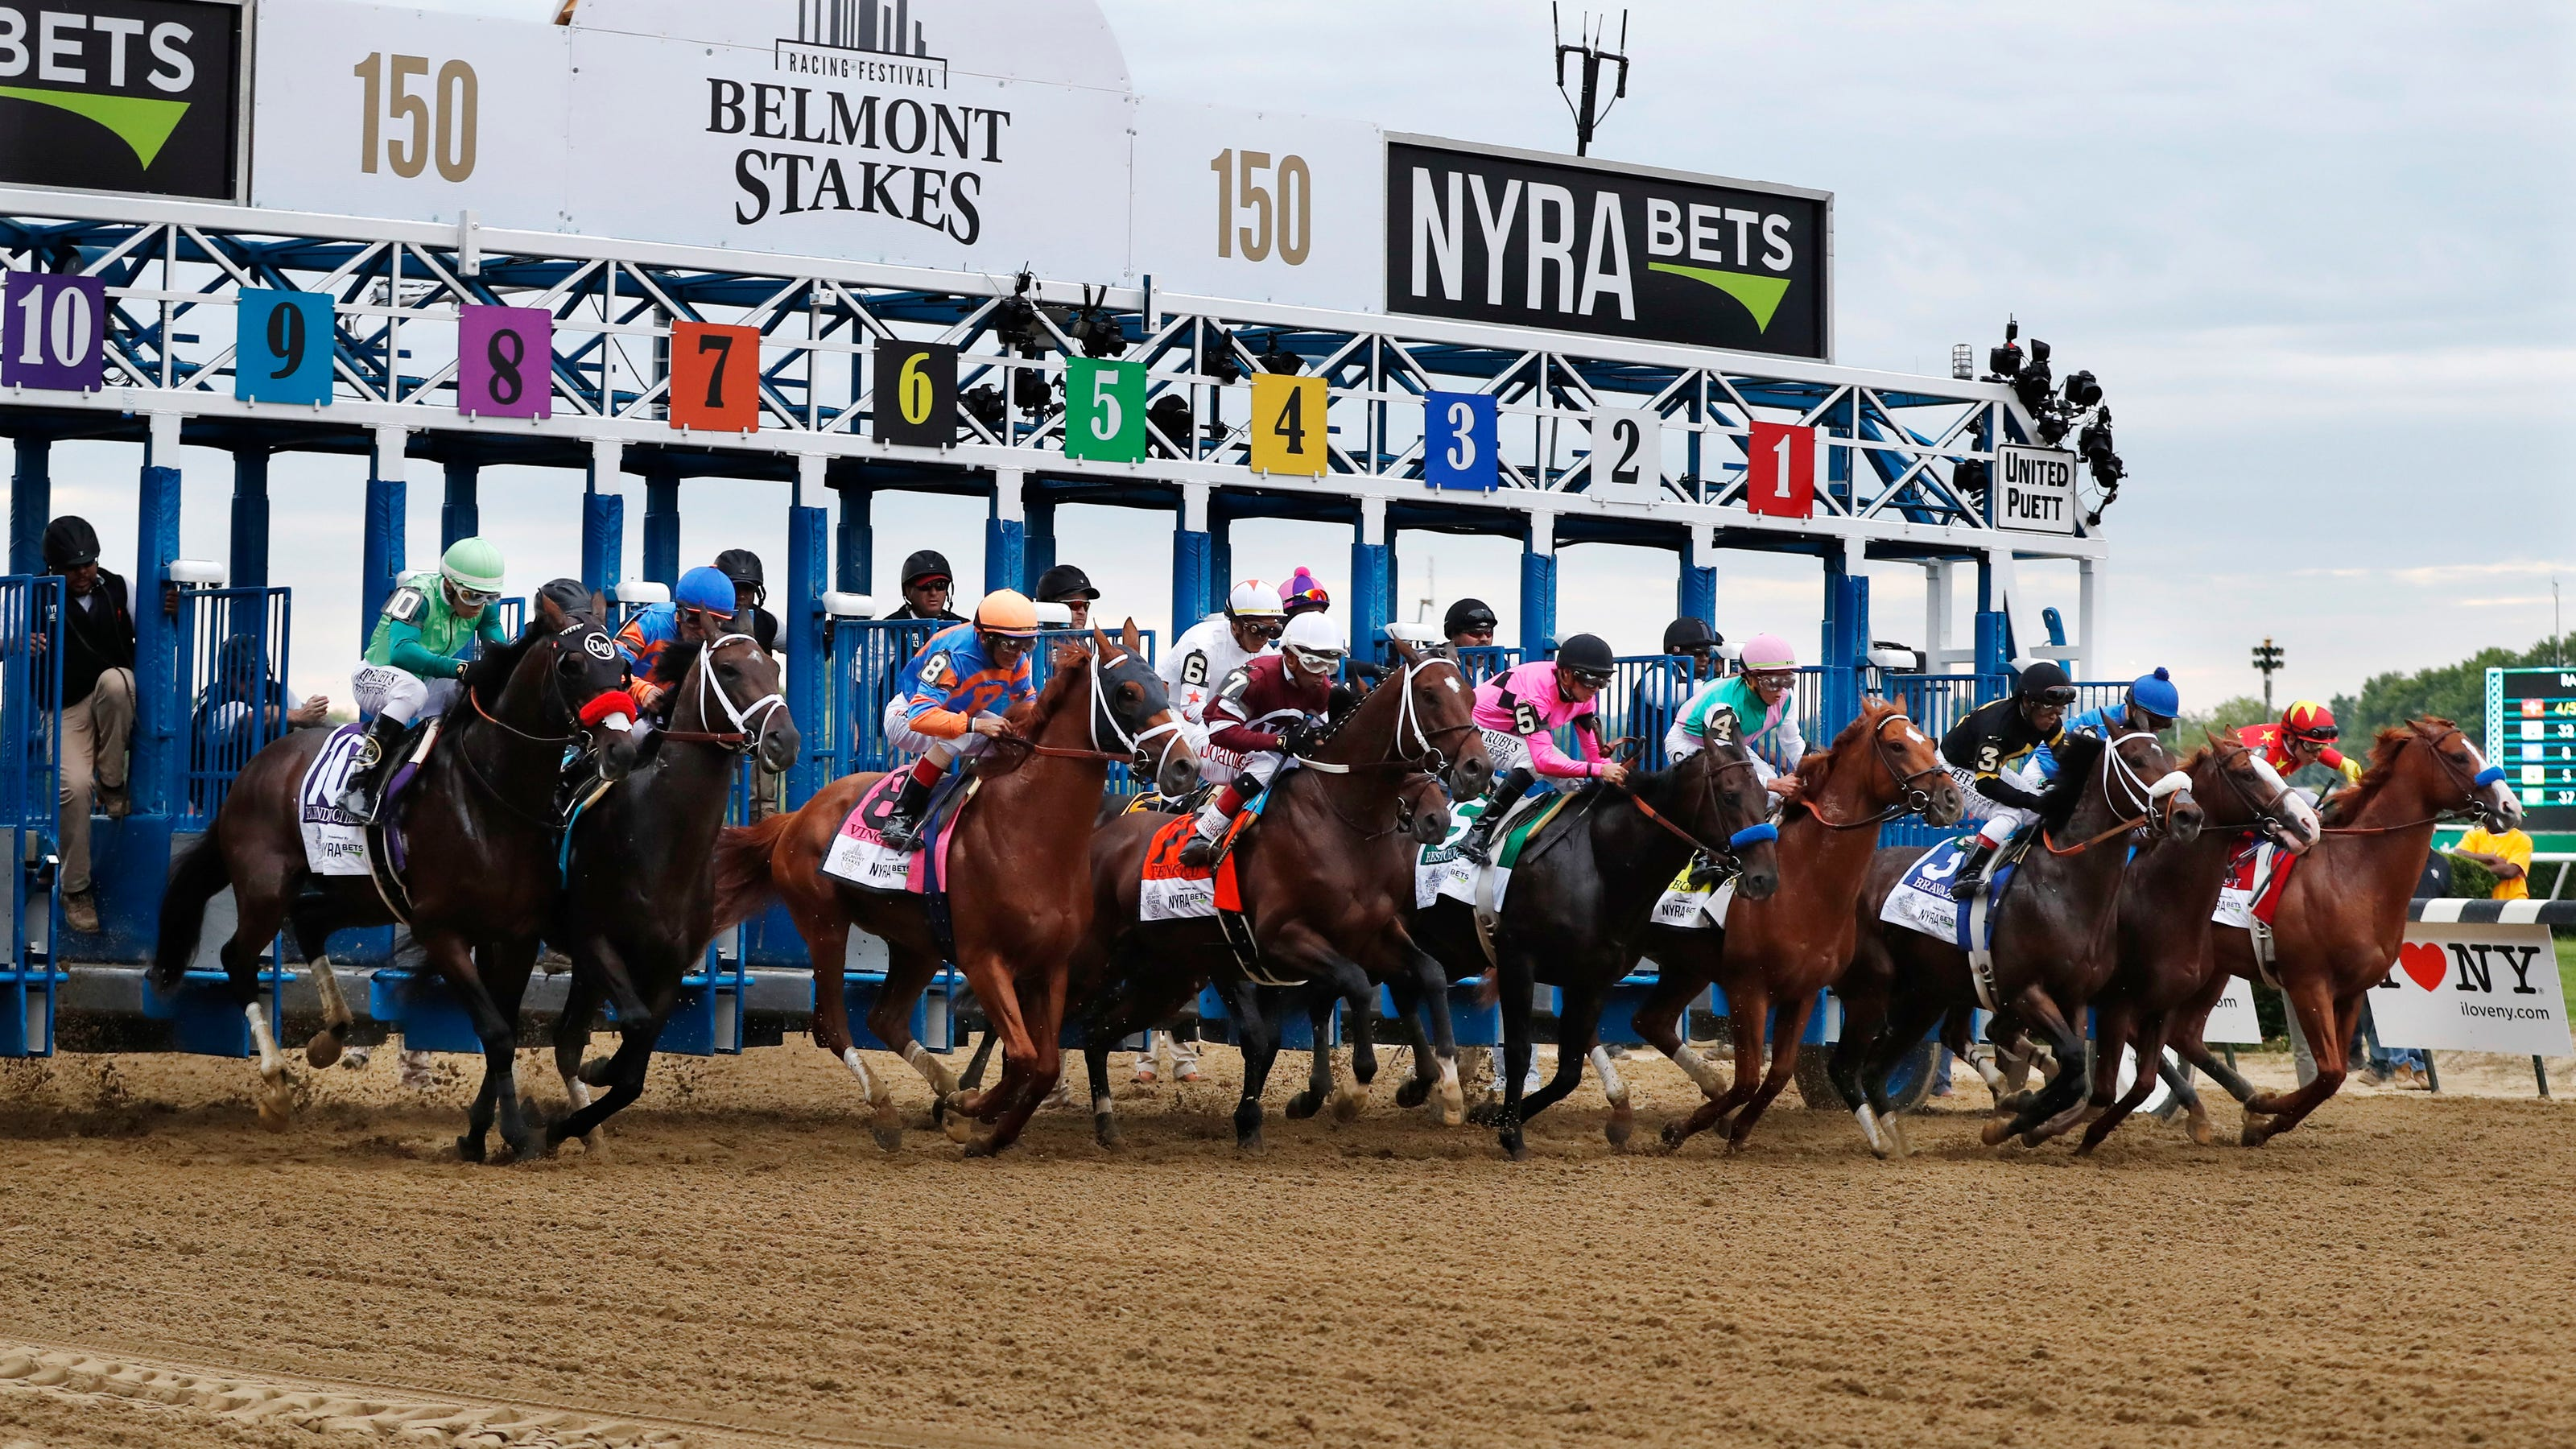 Best way to bet 100 on the belmont stakes 2021 bowl games betting lines